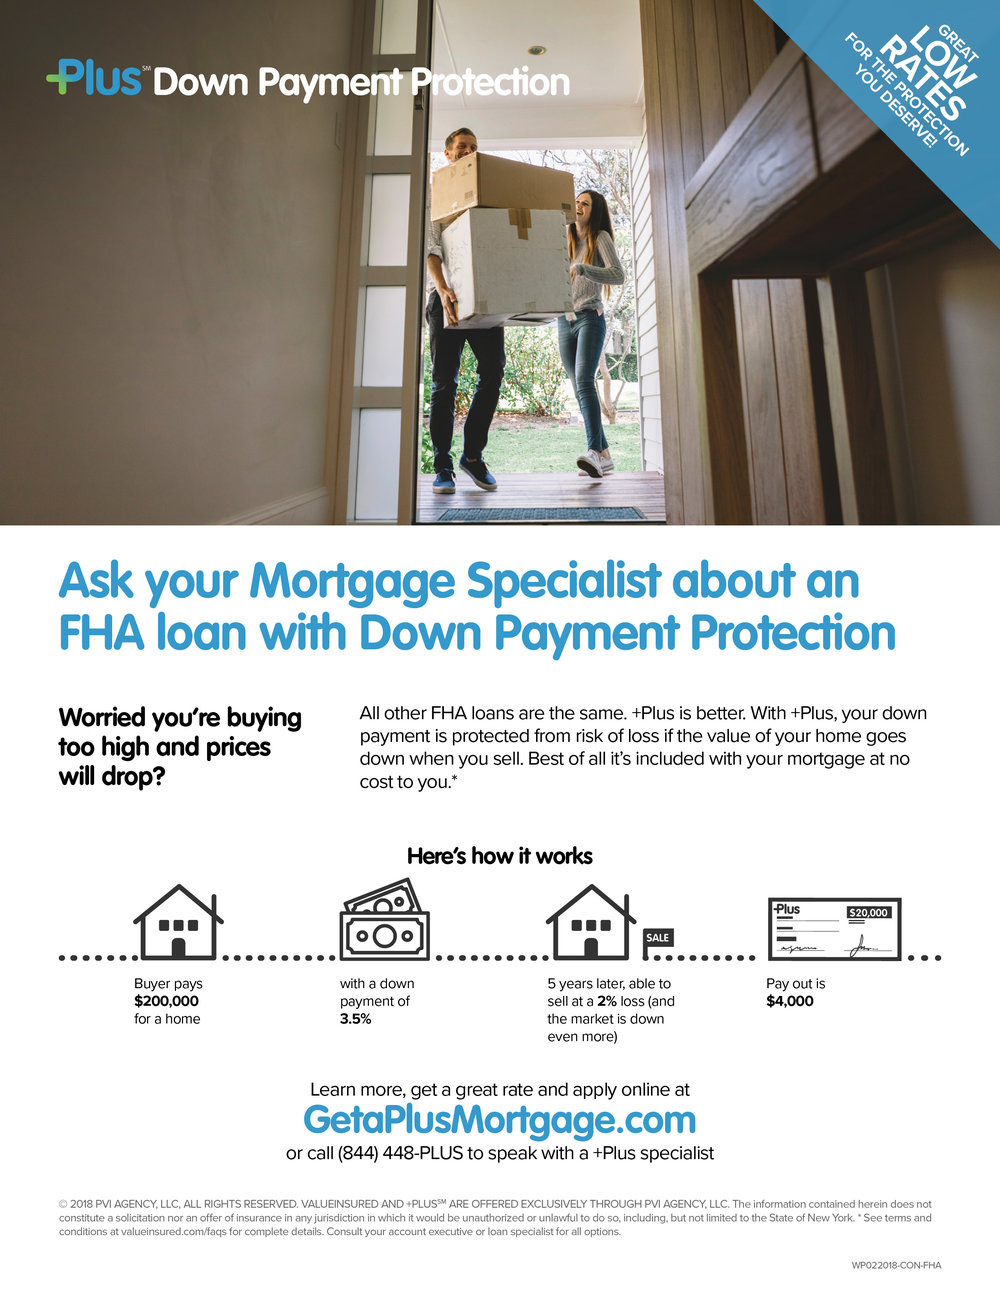 FHA for Borrowers (+Plus Branded)